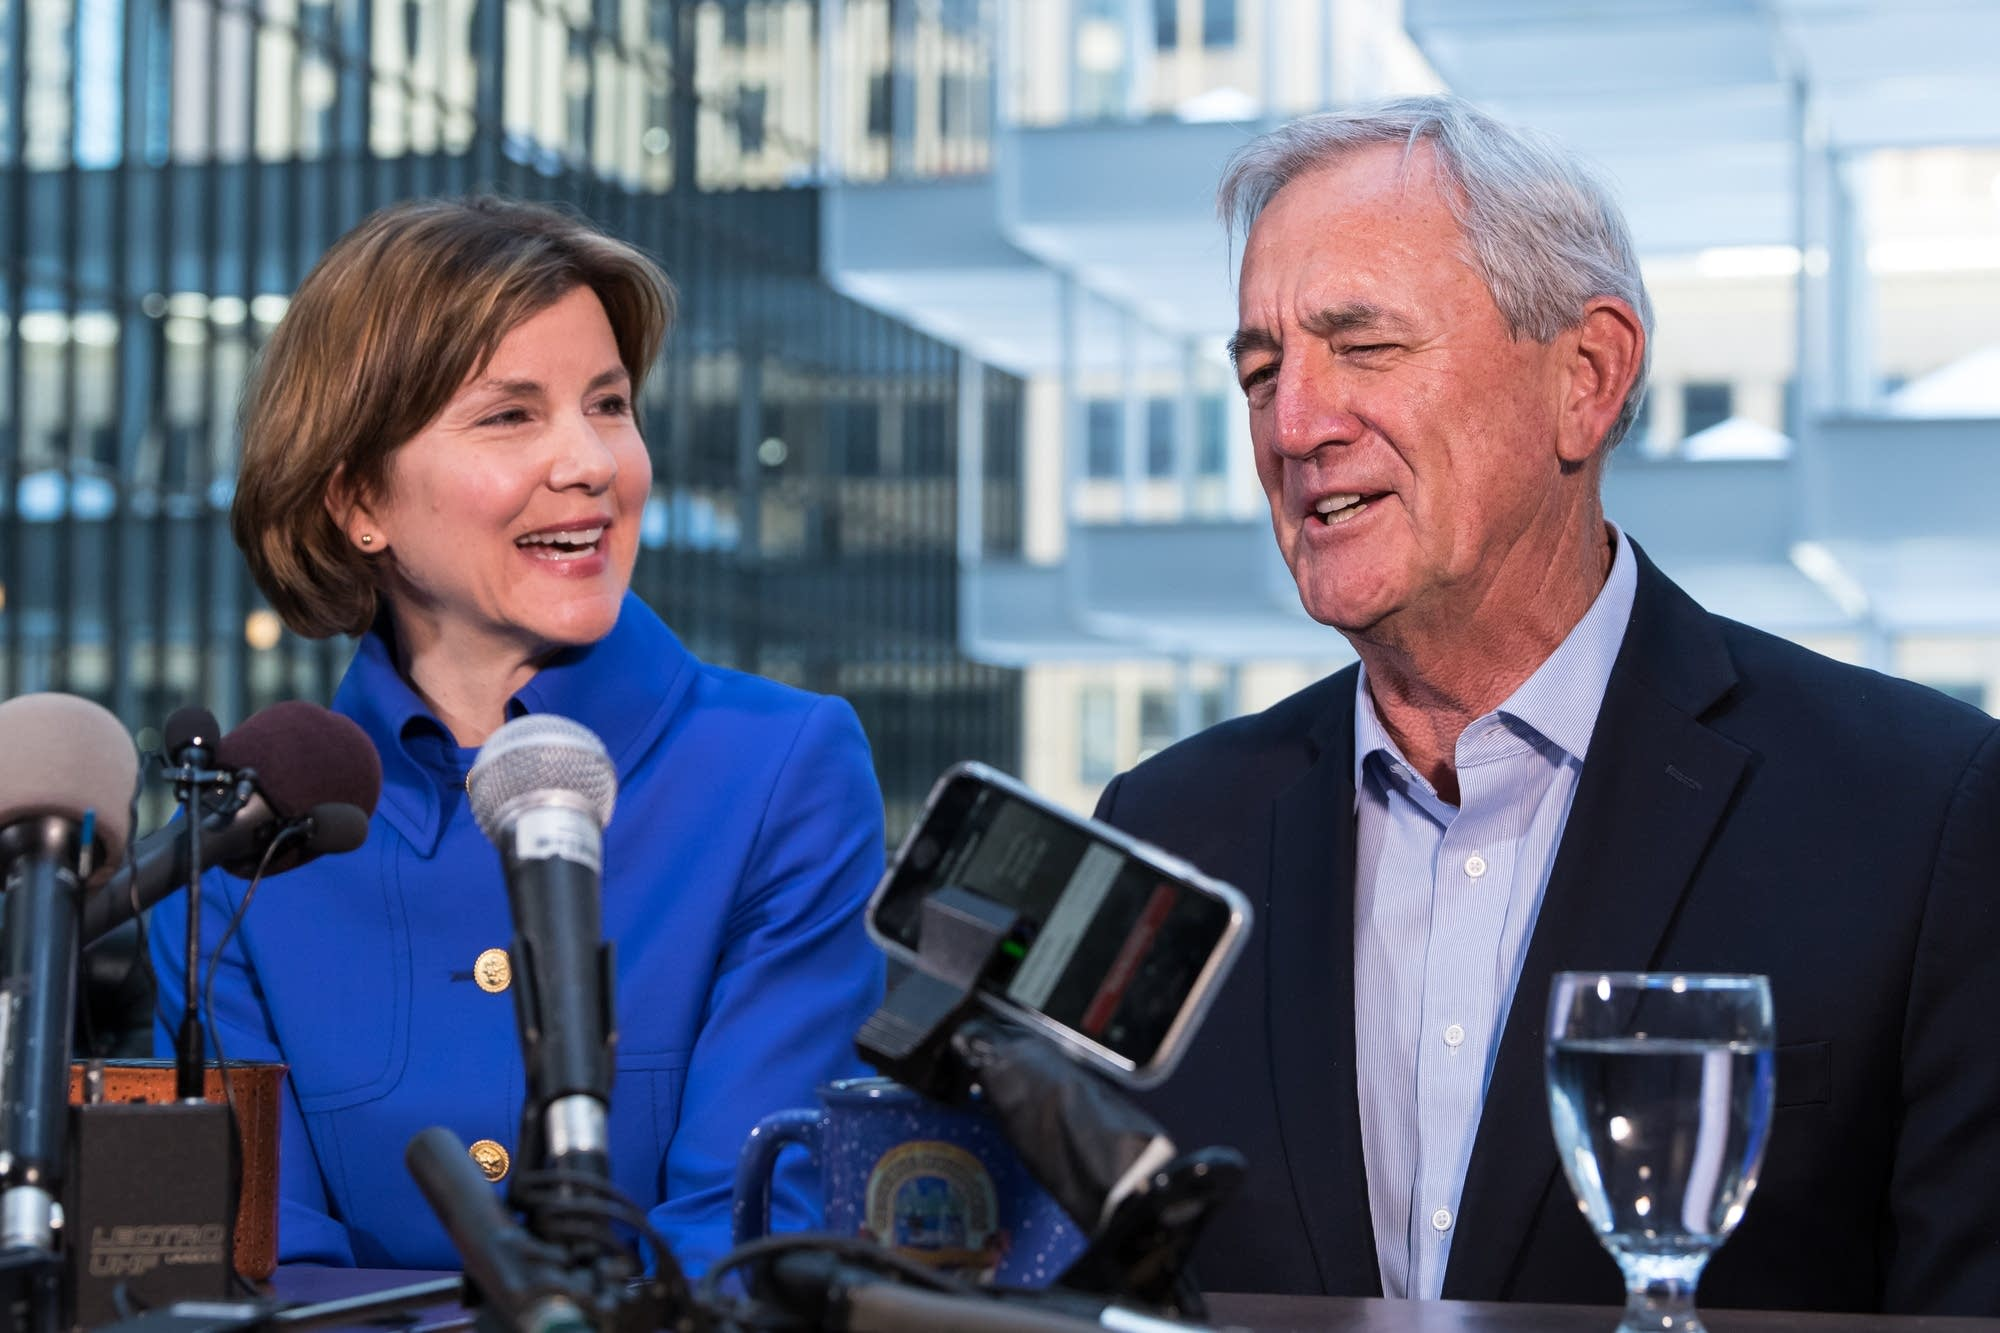 Minnesota attorney general Lori Swanson and U.S. Rep. Rick Nolan.